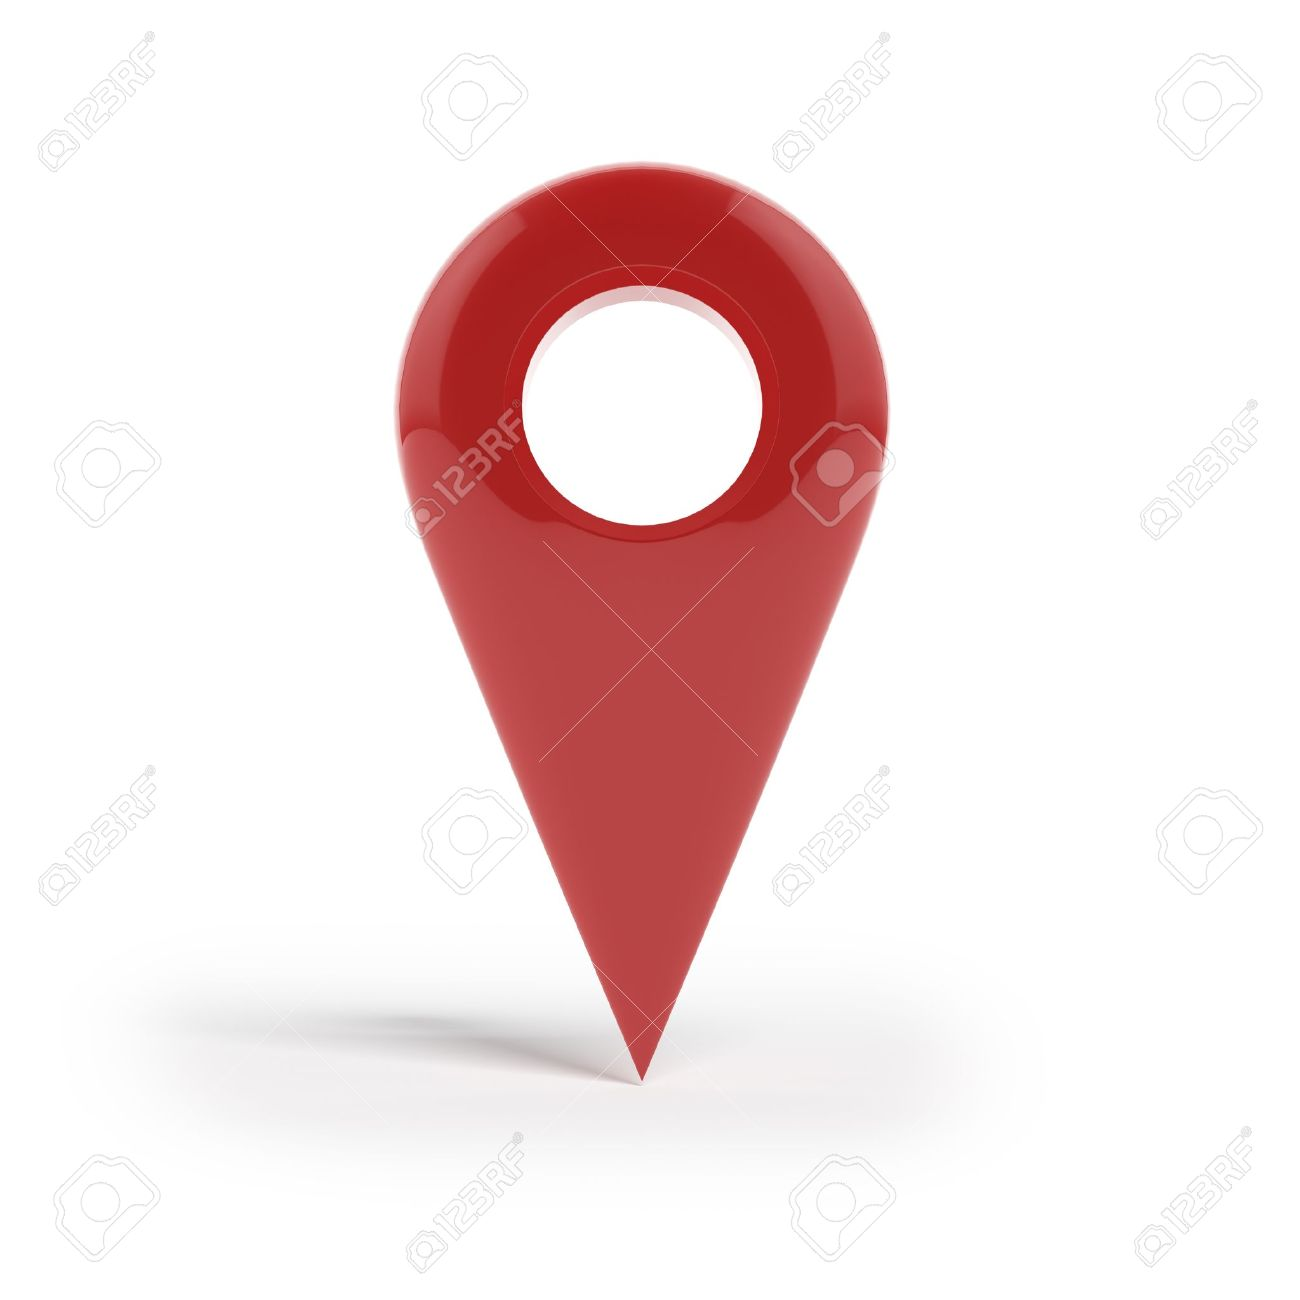 Shiny gloss red Map pointer icon Stock Photo - 16440666